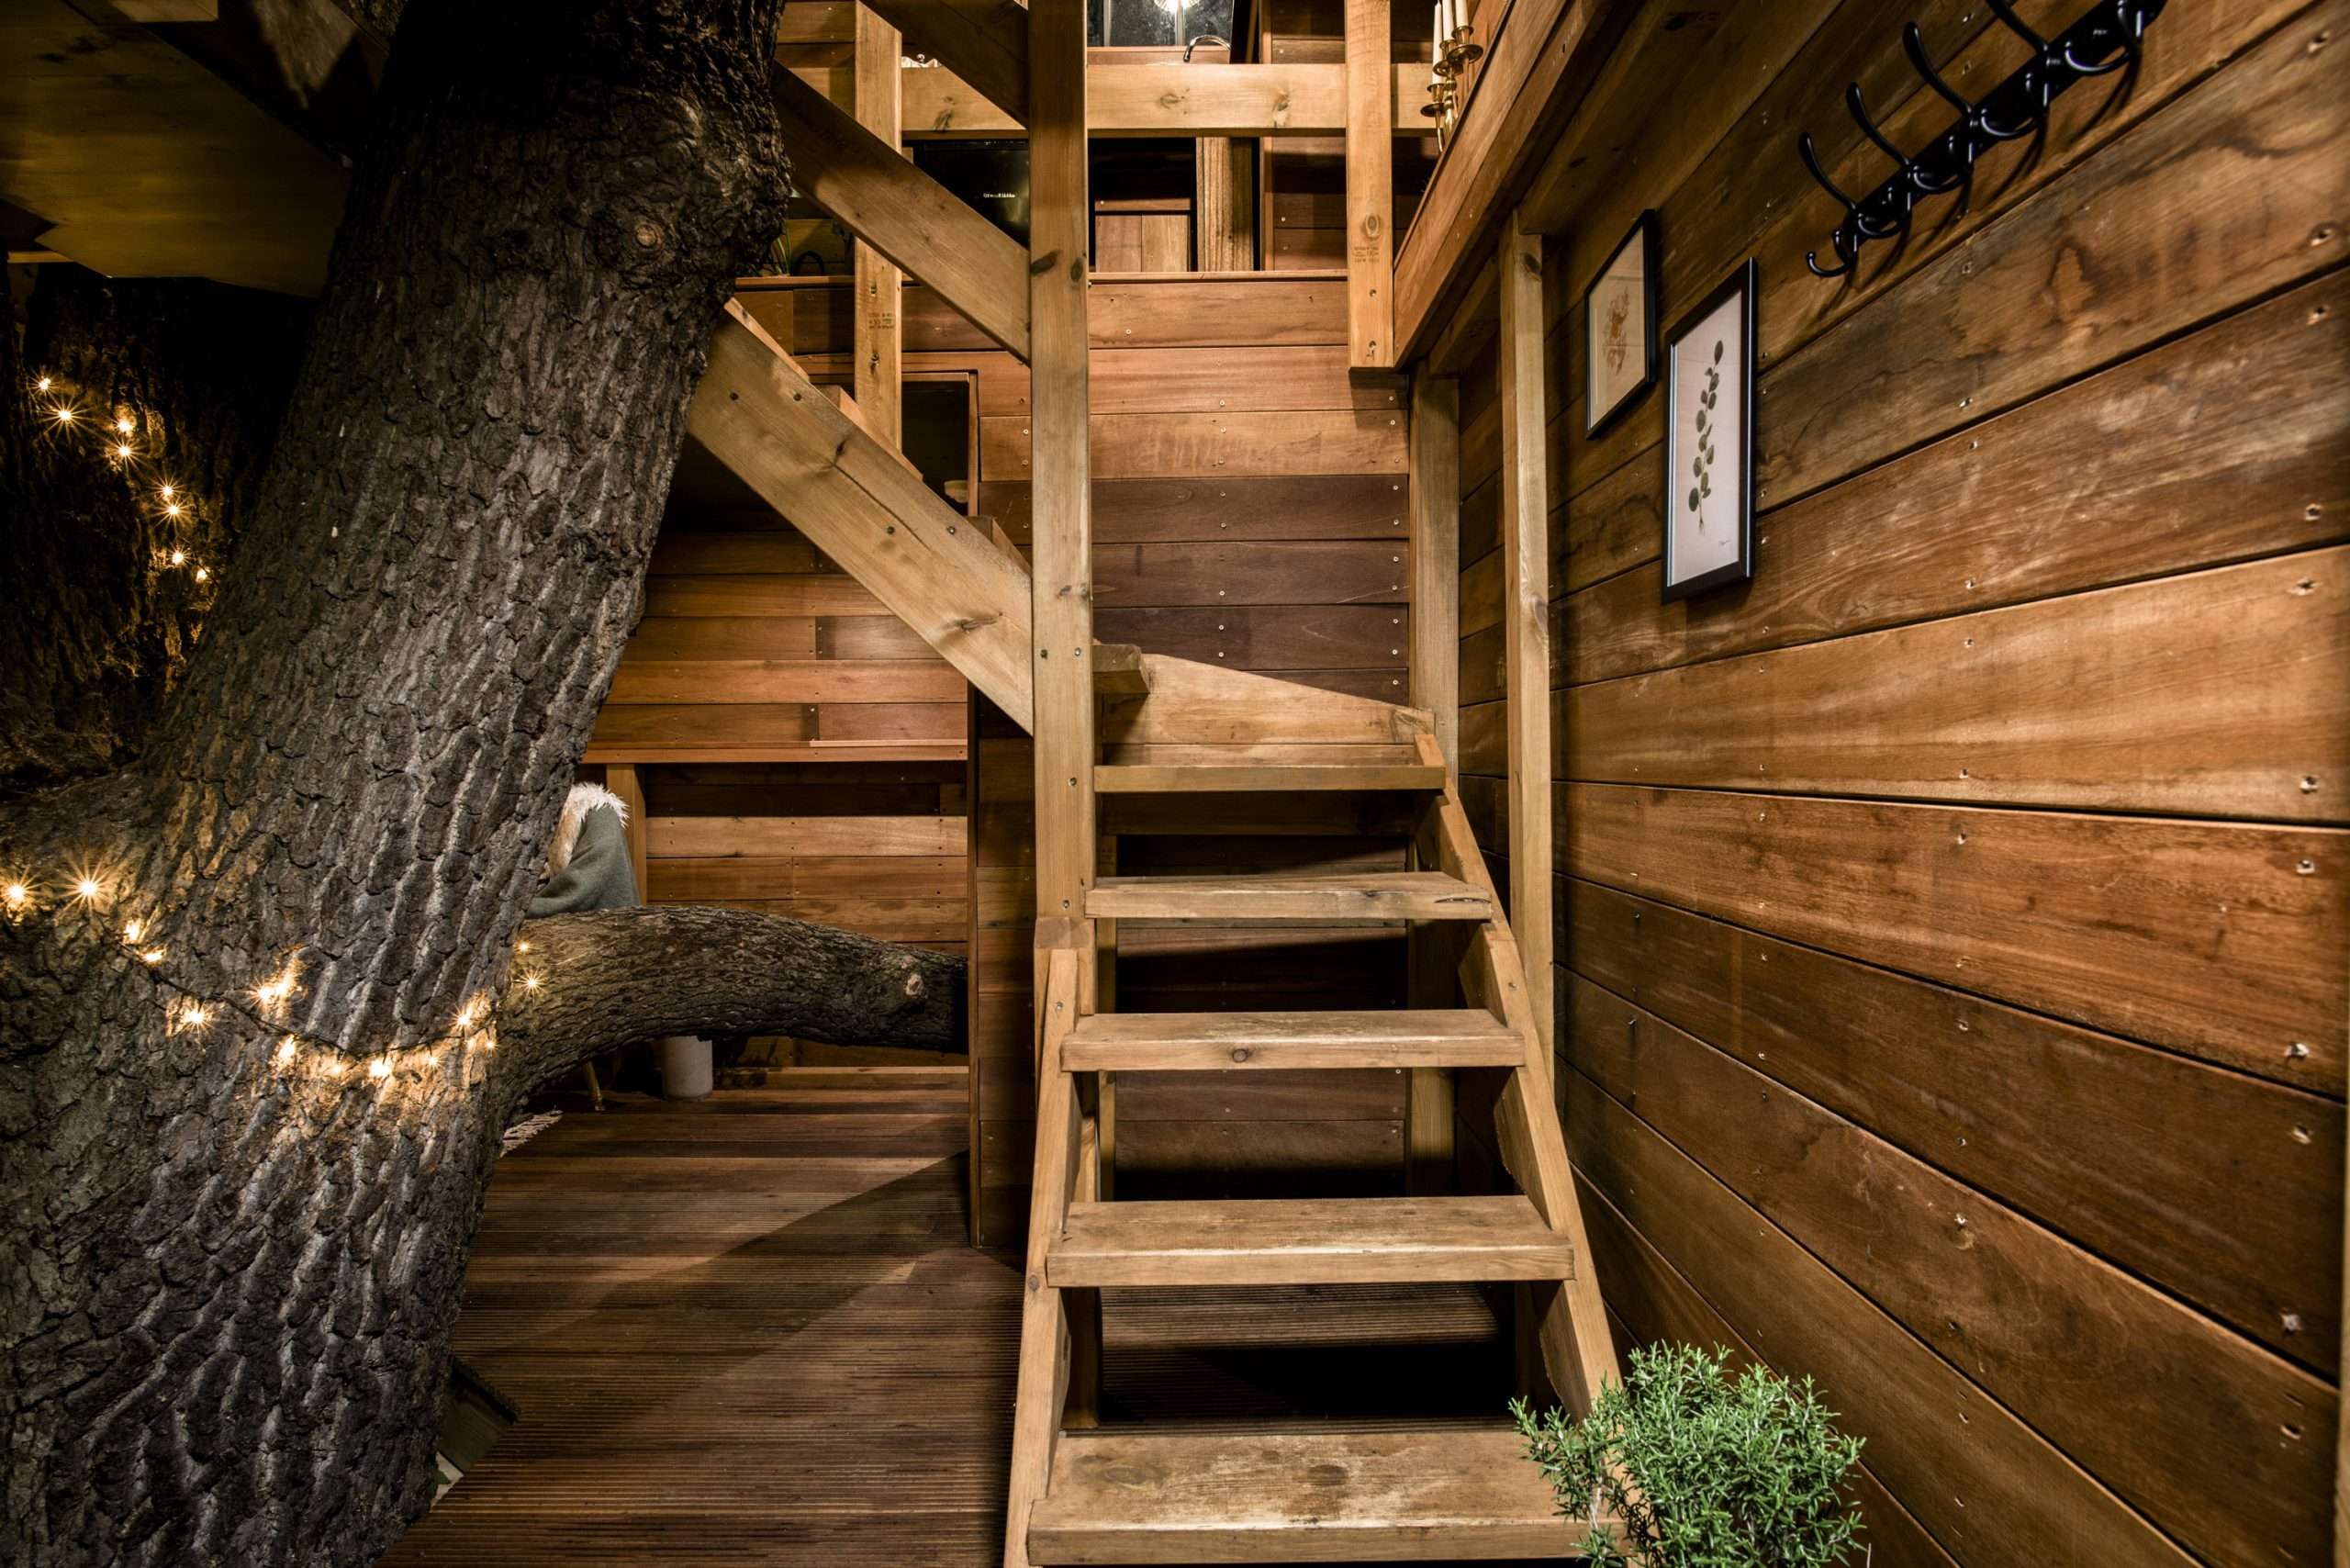 The stairs in The Old Oak at Colemans leading up to the 1st floor